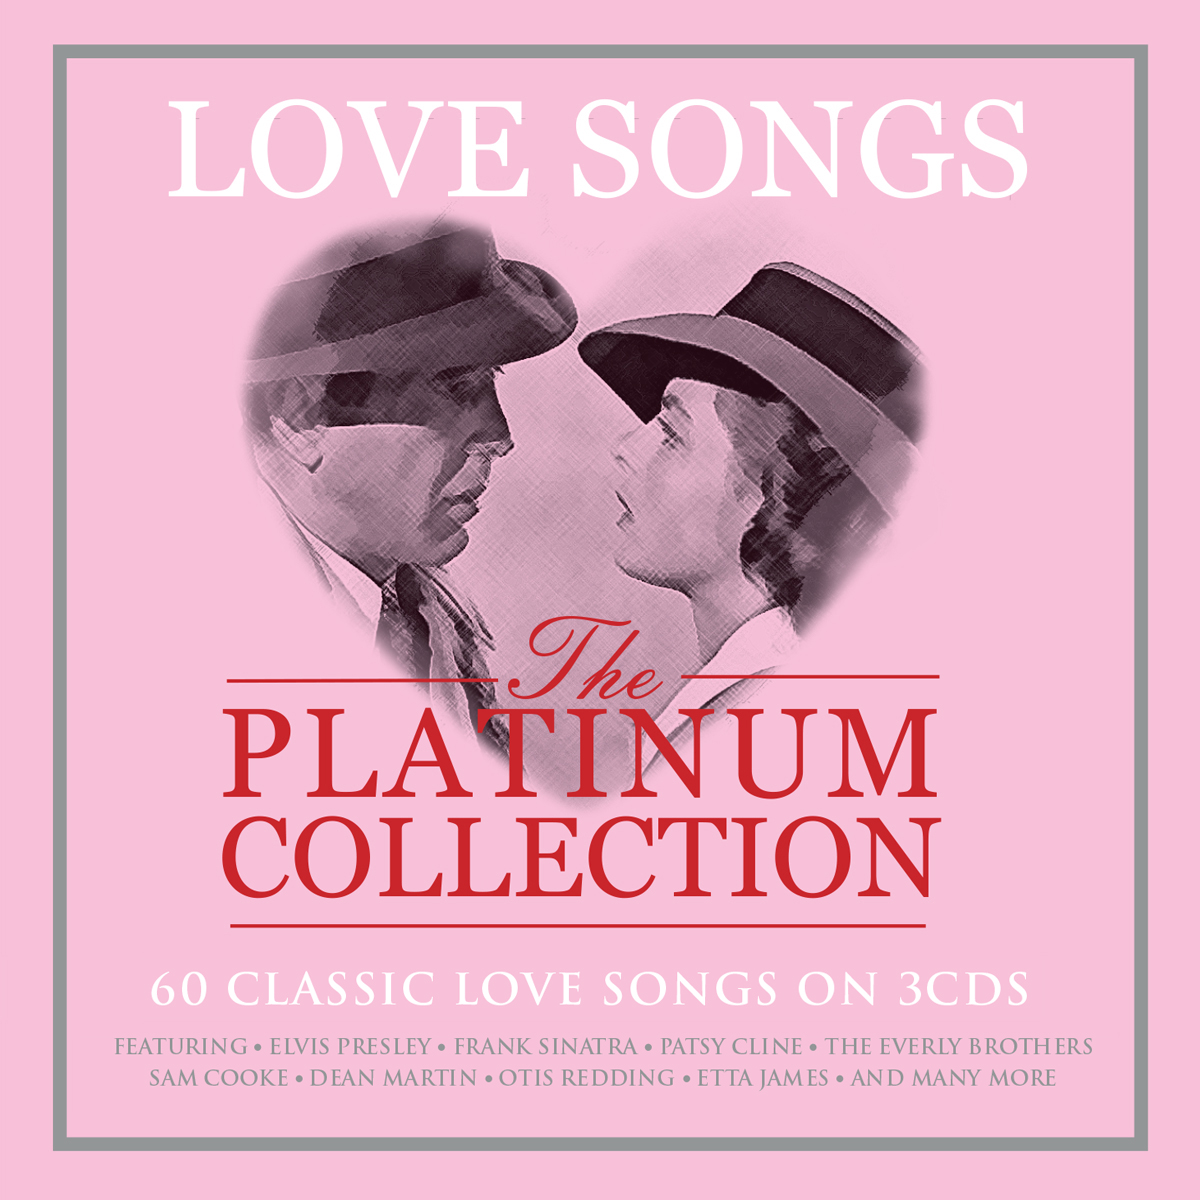 Love Songs: Platinum Collection / Various - Love Songs: Platinum Collection / Various - Musik - NOT NOW - 5060432022761 - 2018